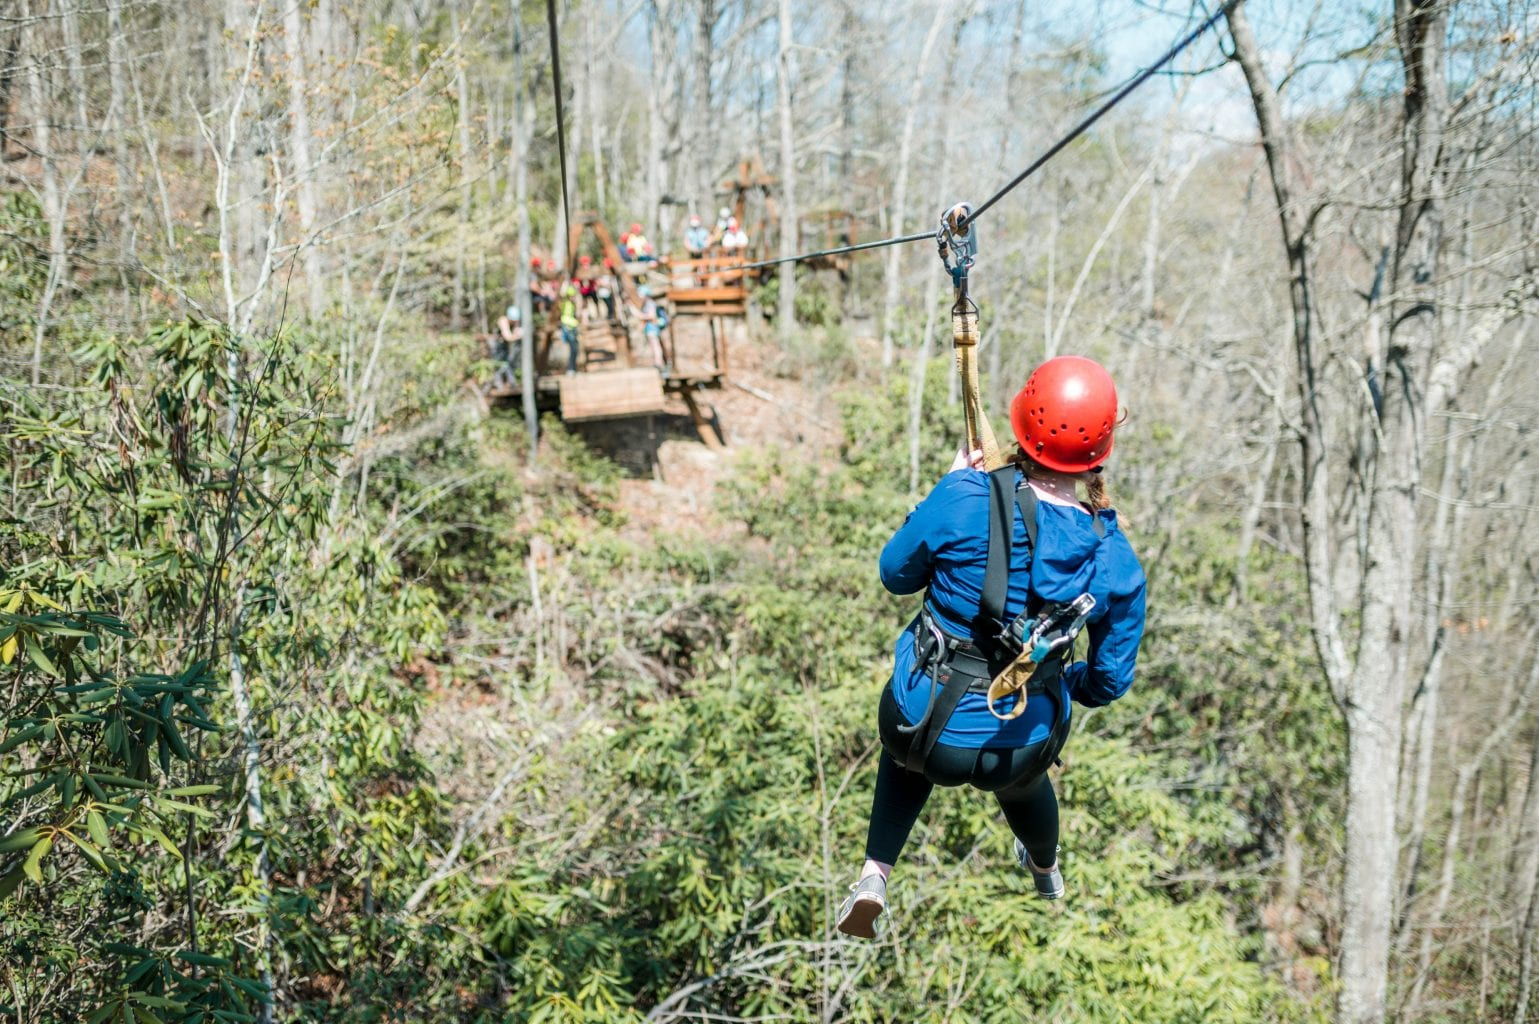 Ziplining in the New River Gorge